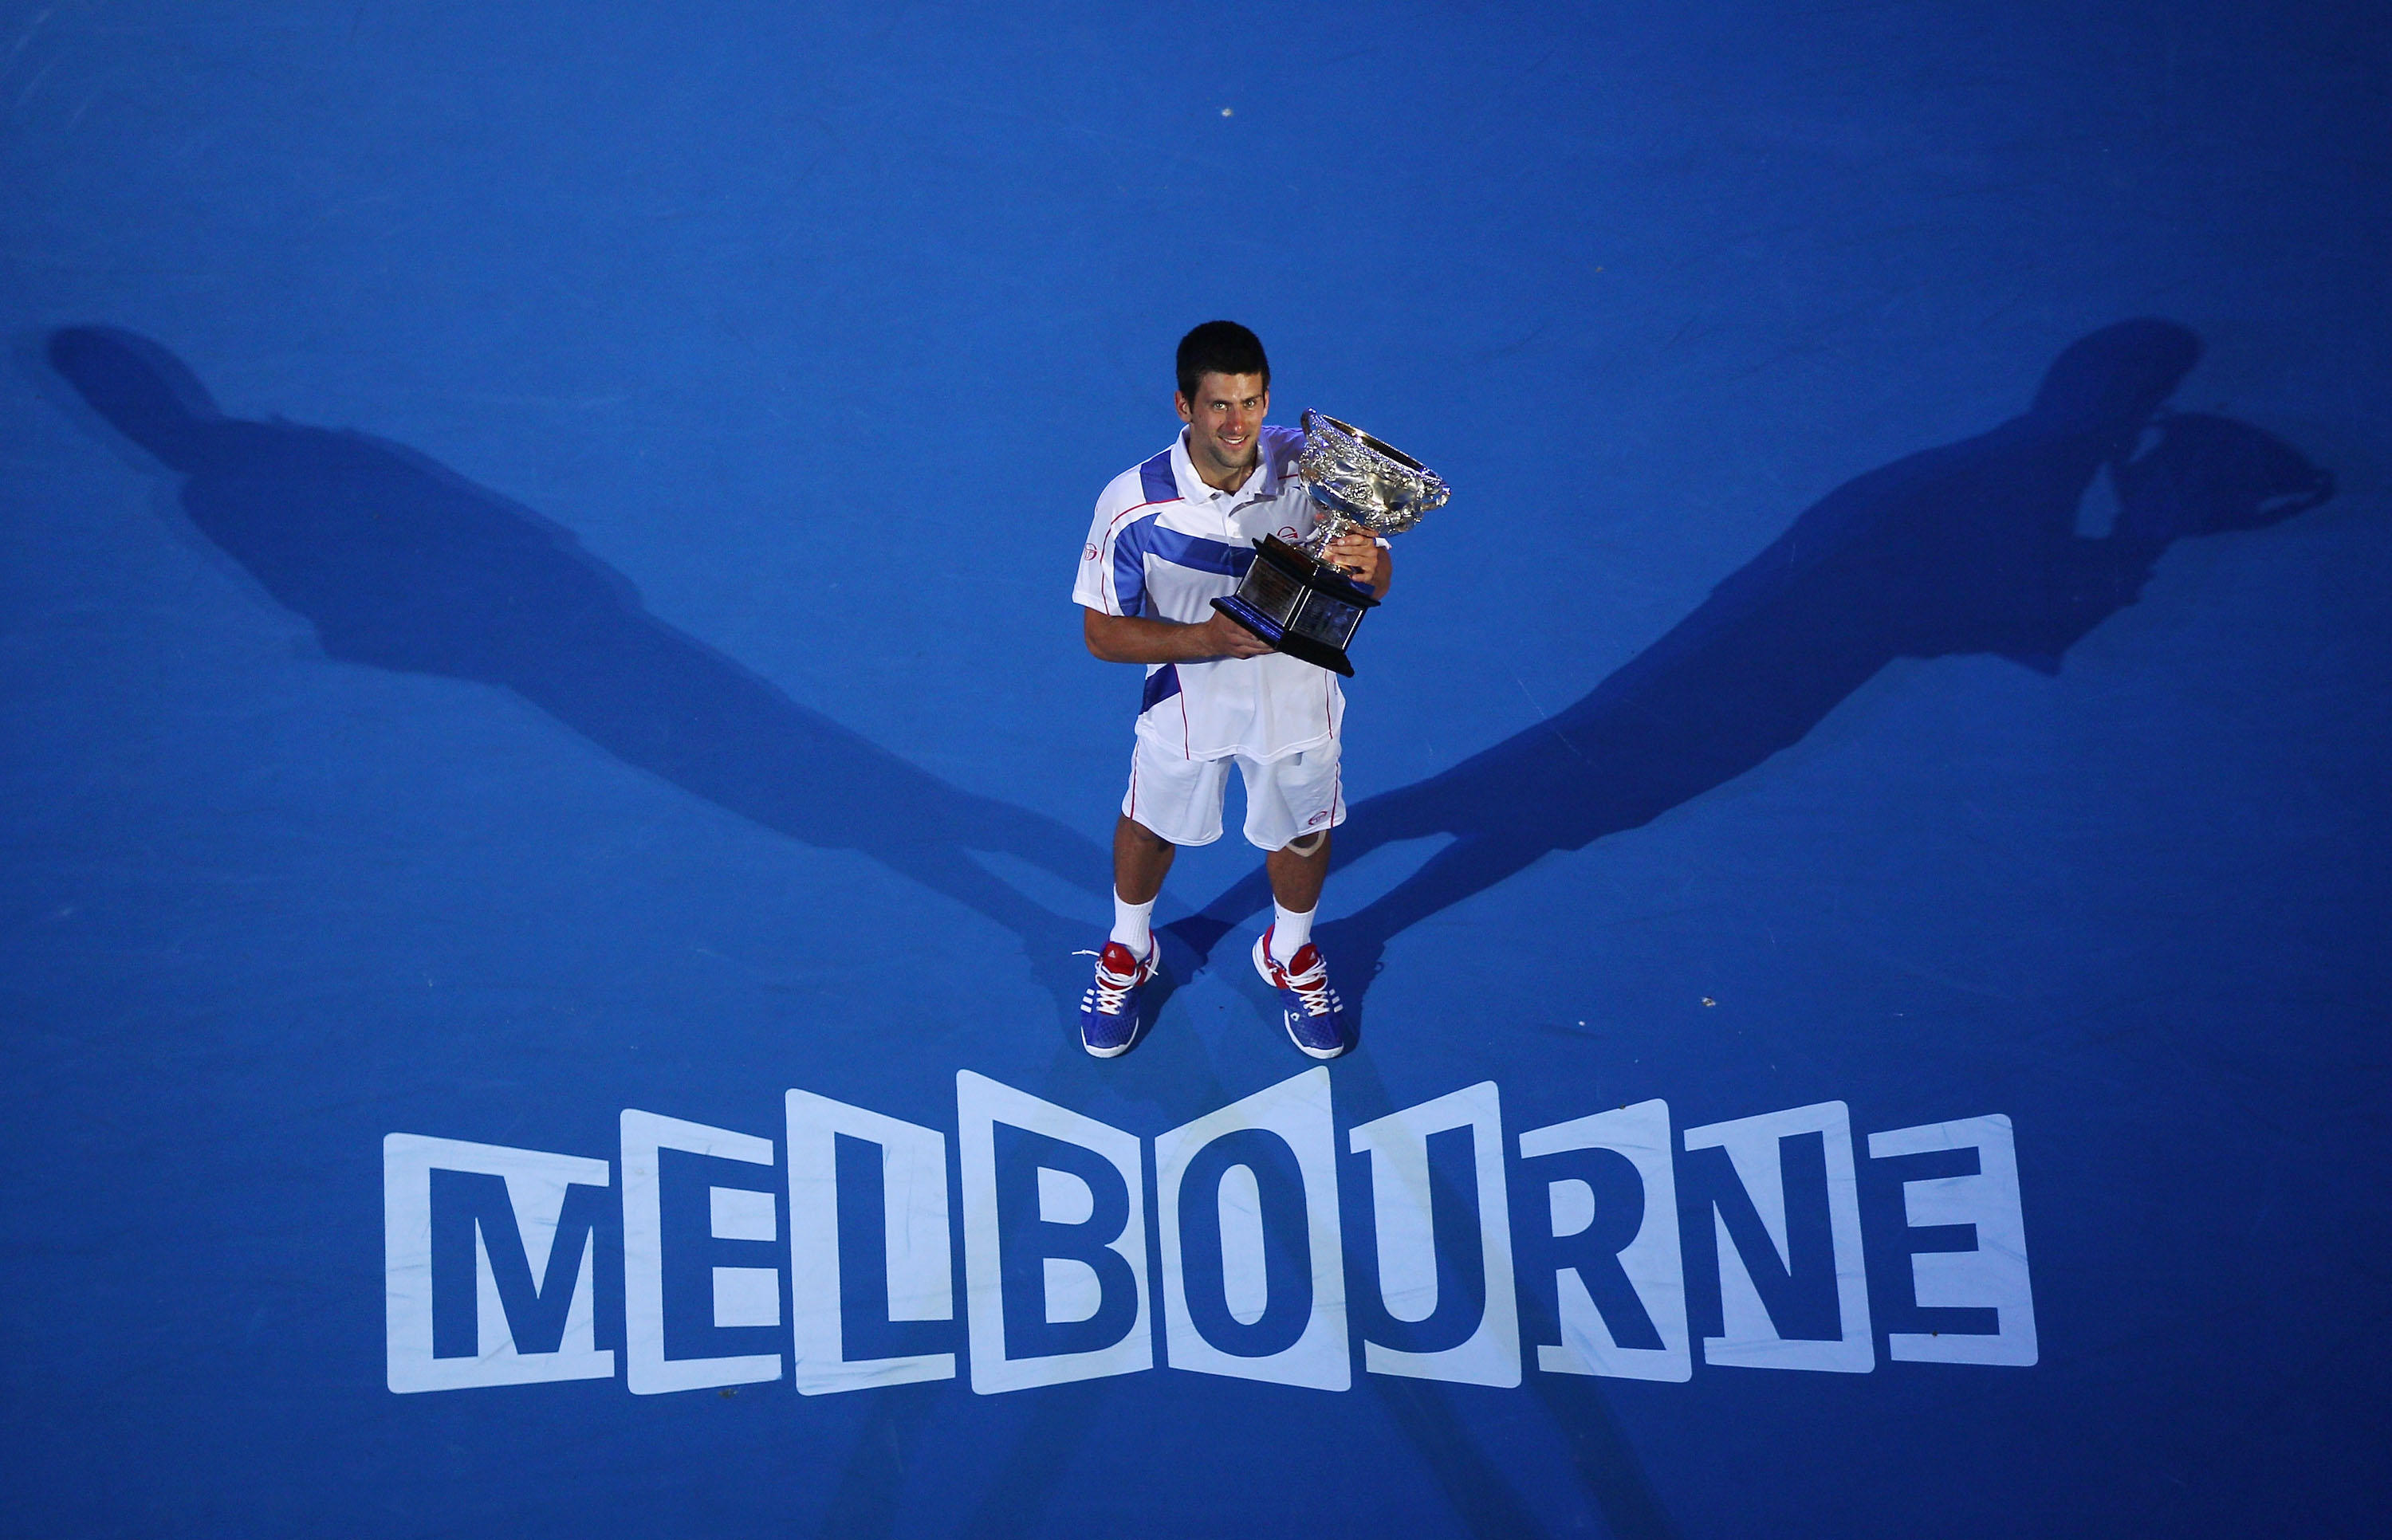 MELBOURNE, AUSTRALIA - JANUARY 30:  Novak Djokovic of Serbia holds the Norman Brookes Challenge Cup after winning his men's final match against Andy Murray of Great Britain during day fourteen of the 2011 Australian Open at Melbourne Park on January 30, 2